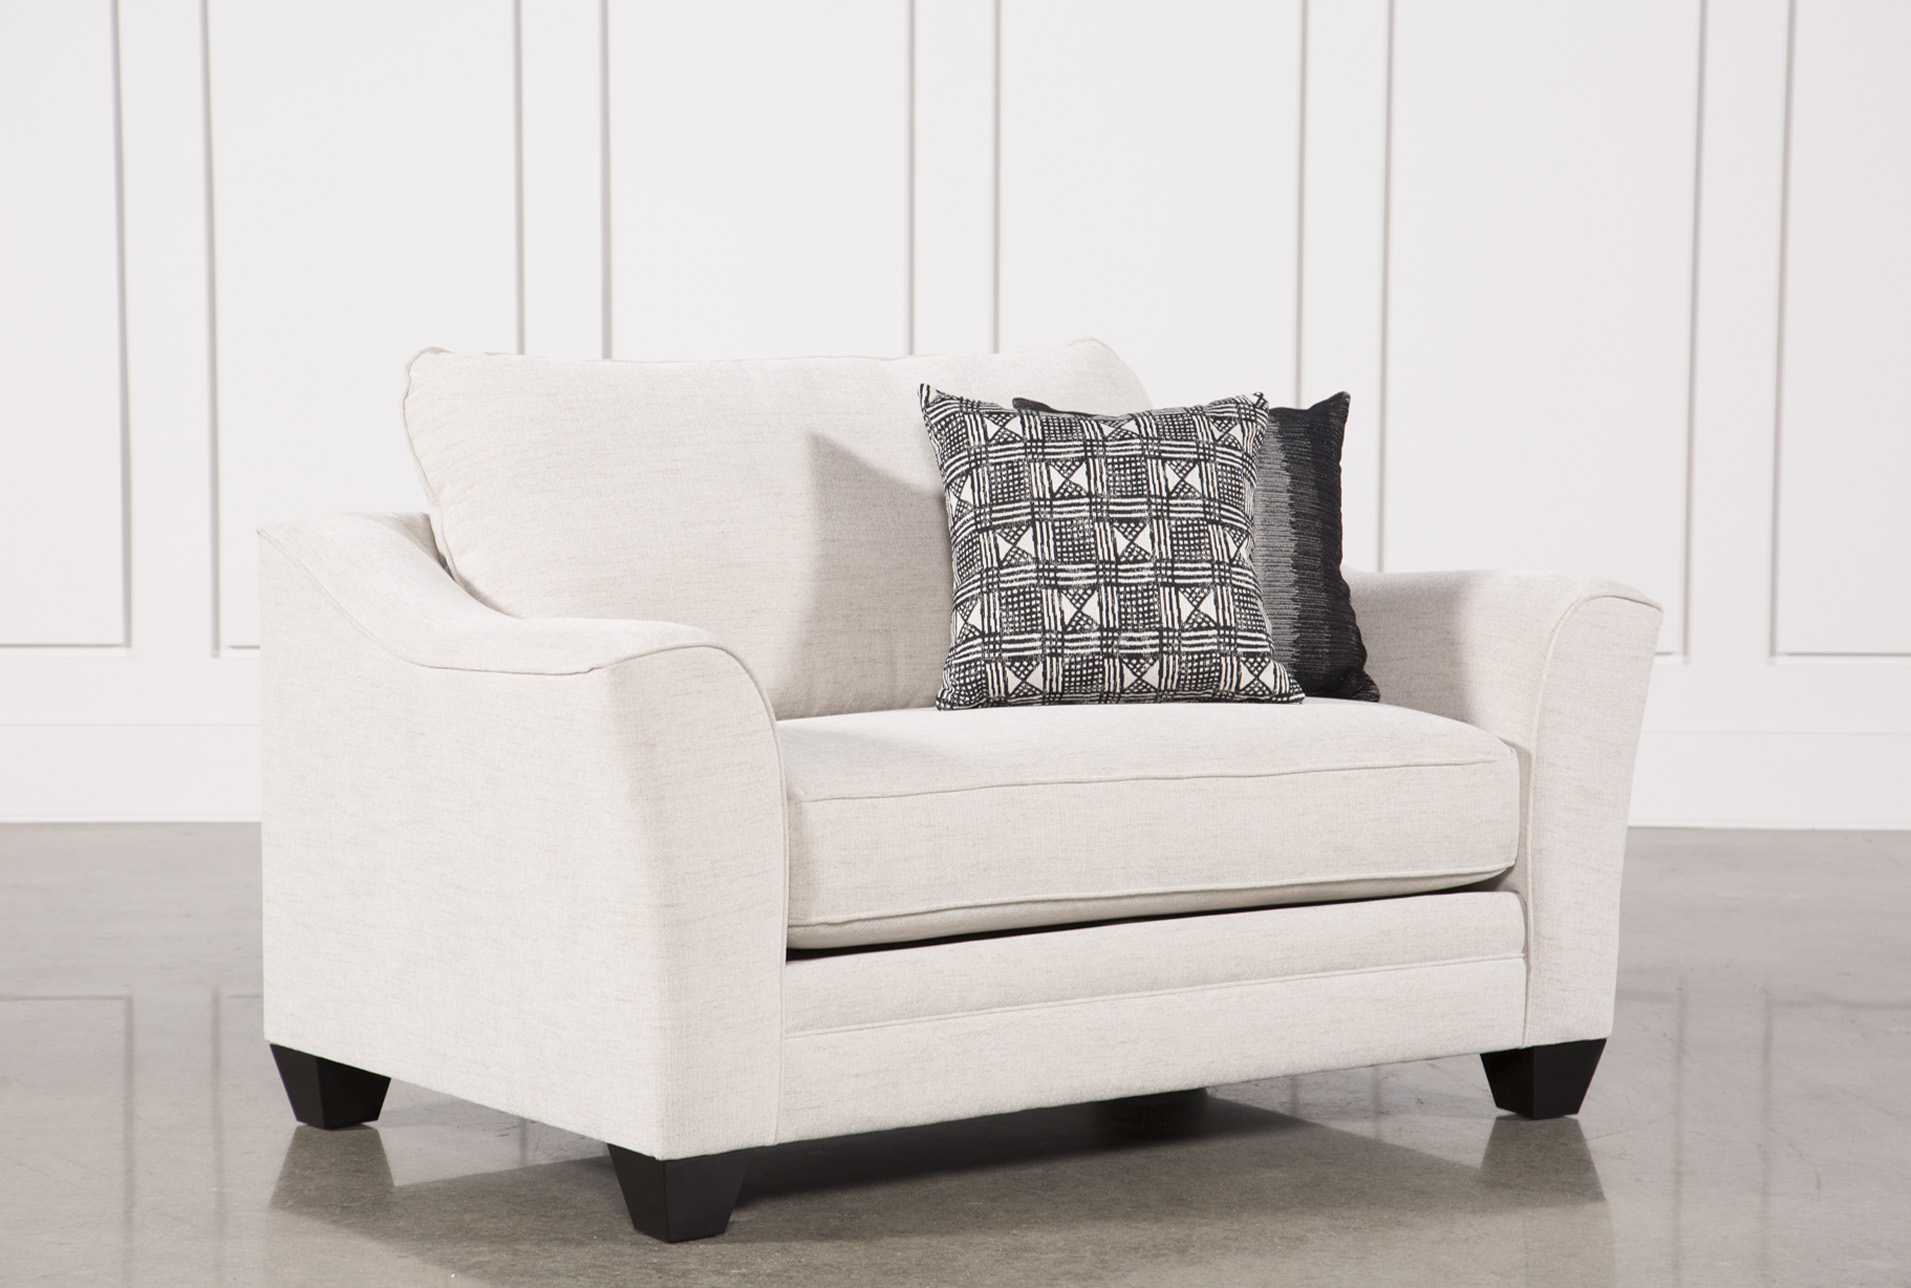 Modern Oversized Chairs for Your Home \u0026 Office